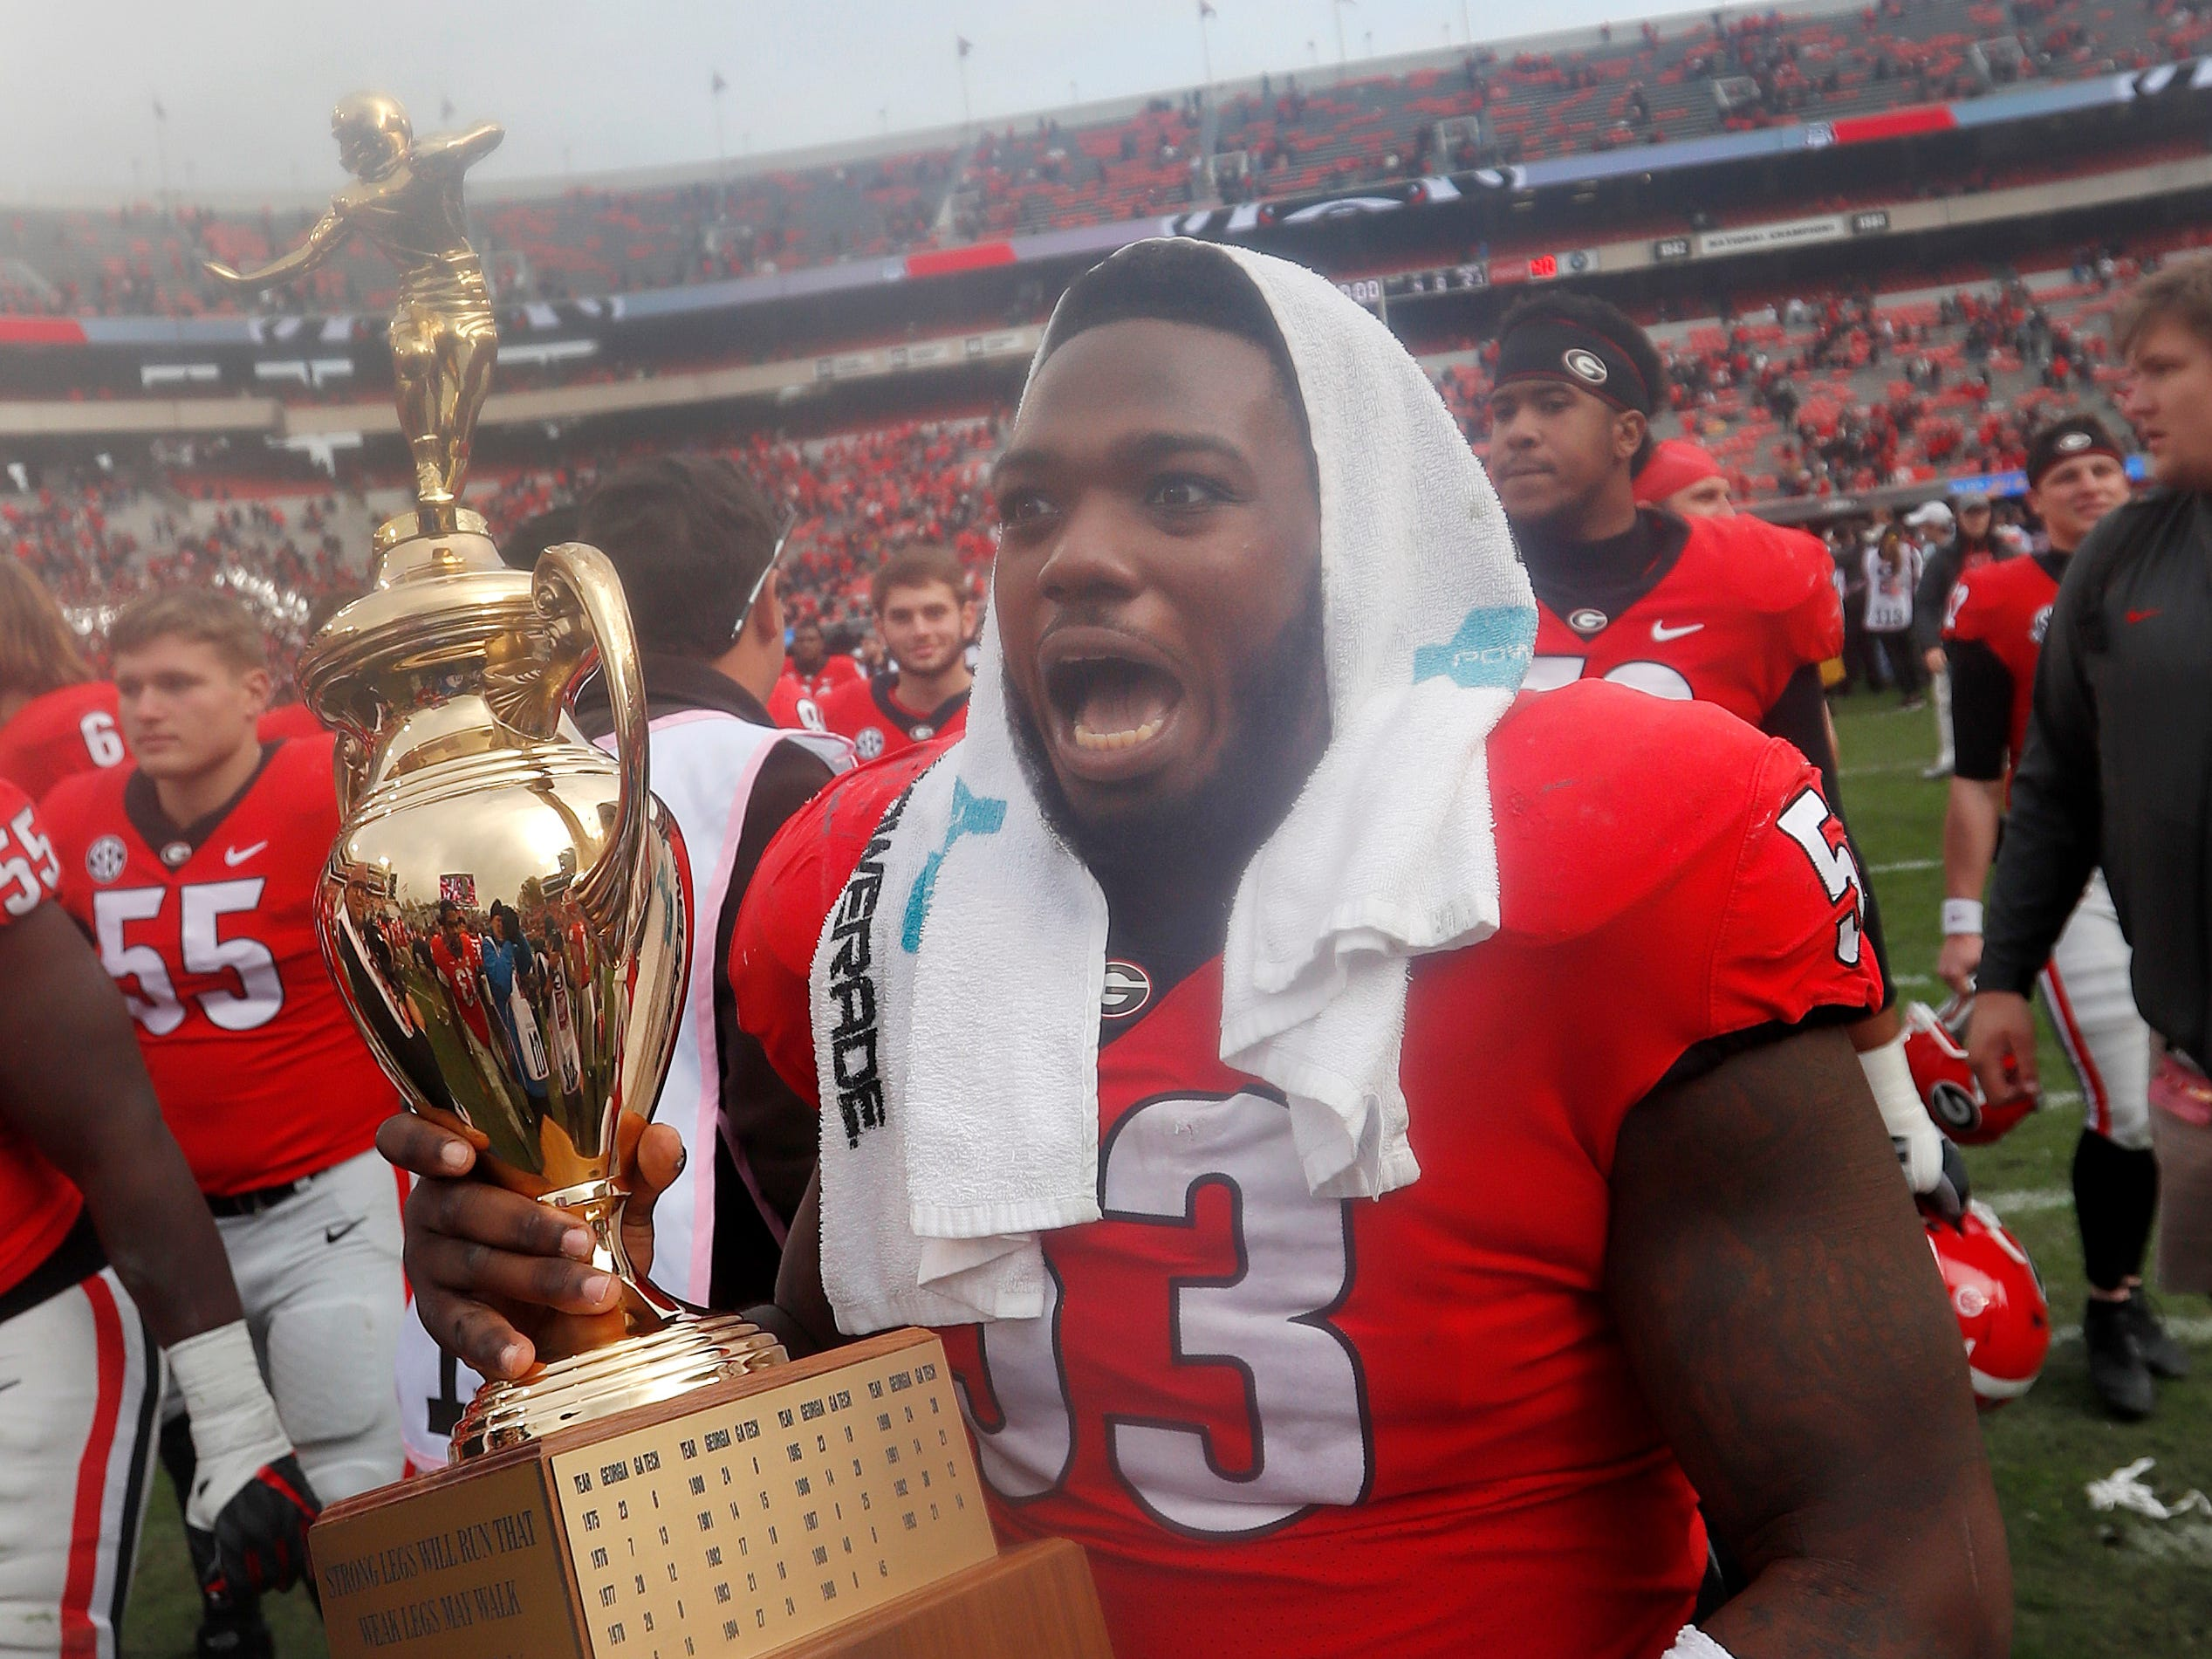 Governor's Cup: Georgia center Lamont Gaillard (53) reacts as he carries the Governor's Cup off the field after defeating Georgia Tech, 45-21, in  Athens, Ga., on Nov. 24.